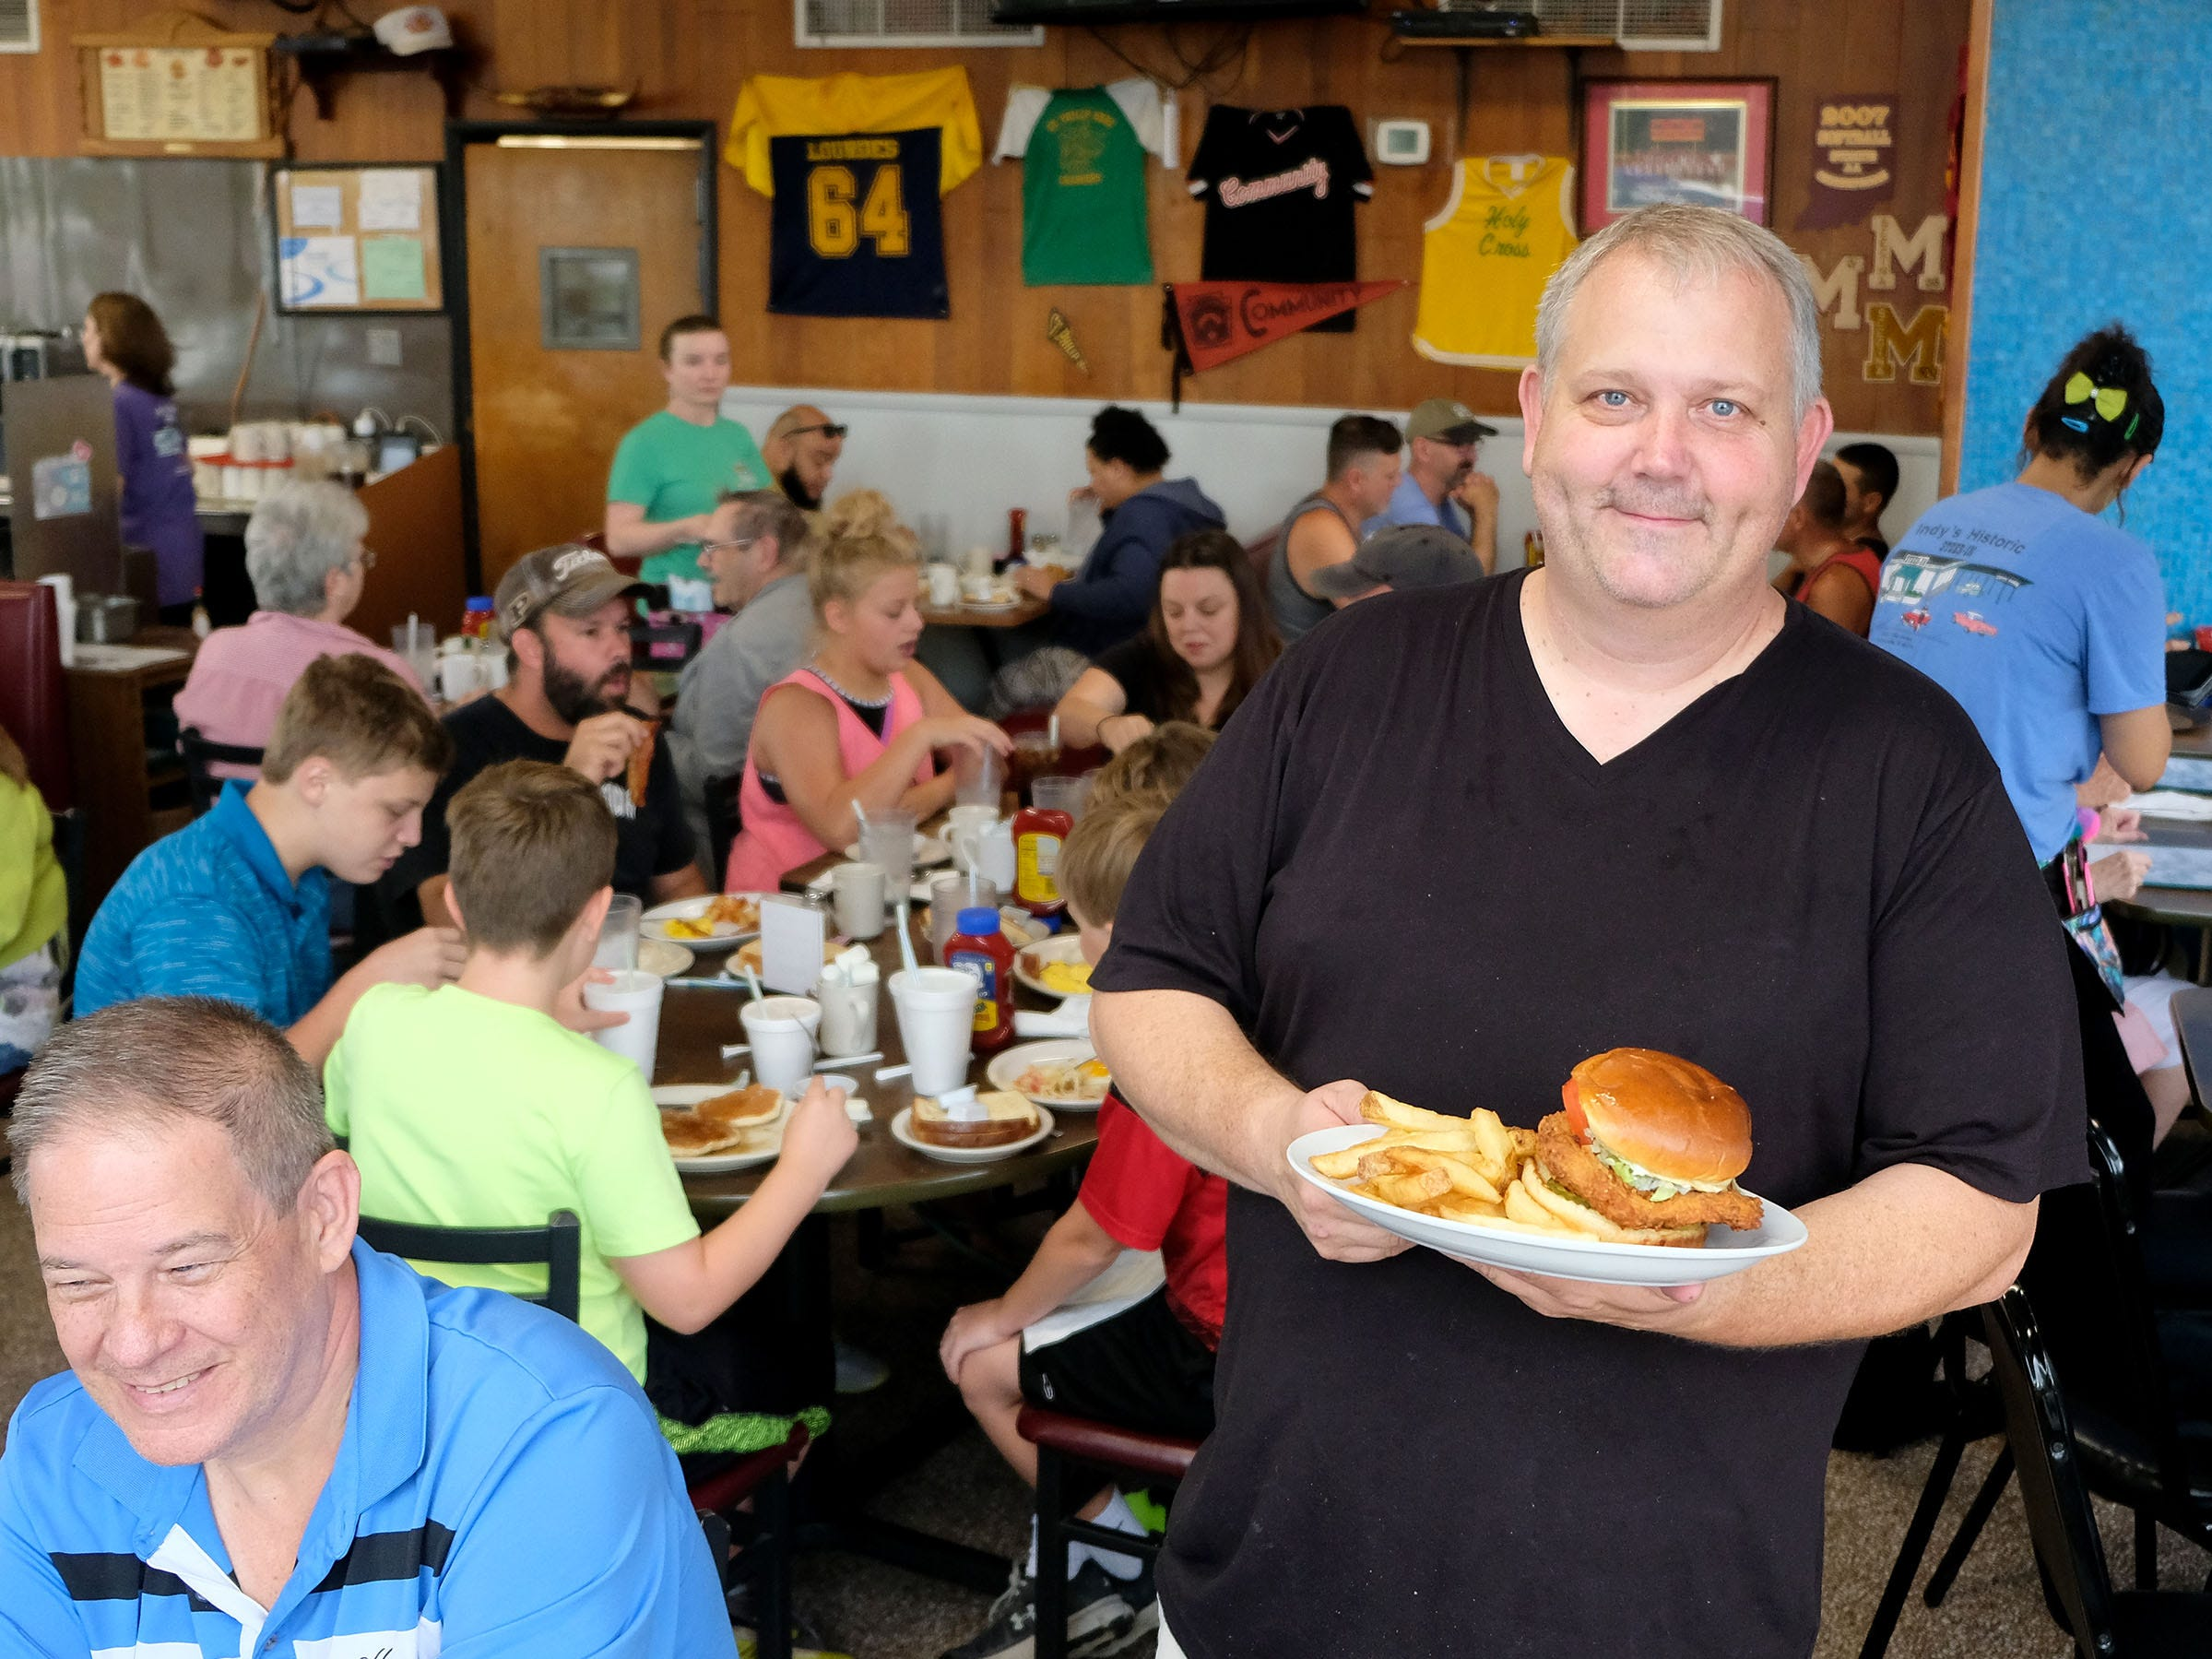 "Casey Kehrer, along with his parents, bought the Steer-In restaurant in 2007, keeping alive what is now a 58-year tradition of great diner grub. The family introduced the tenderloin sandwich to the diner. ""We'll sell between 1,800 and 2,100 tenderloins a month,"" Kehrer said."